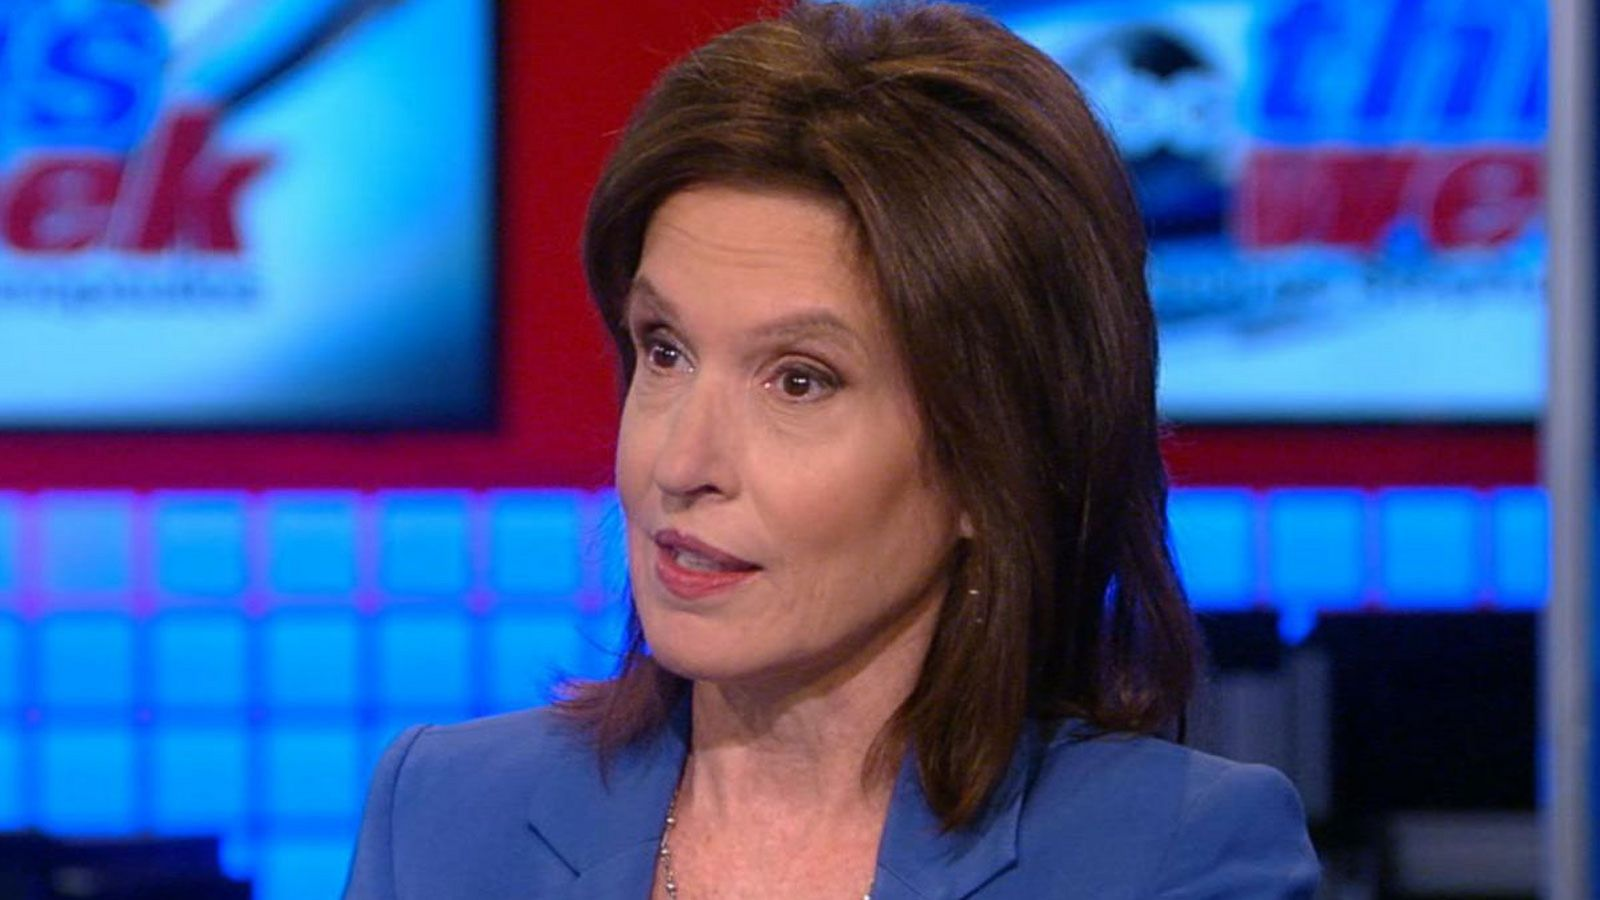 VIDEO: Katrina Vanden Heuvel Says This is a 'Rewrite the Rules Election'